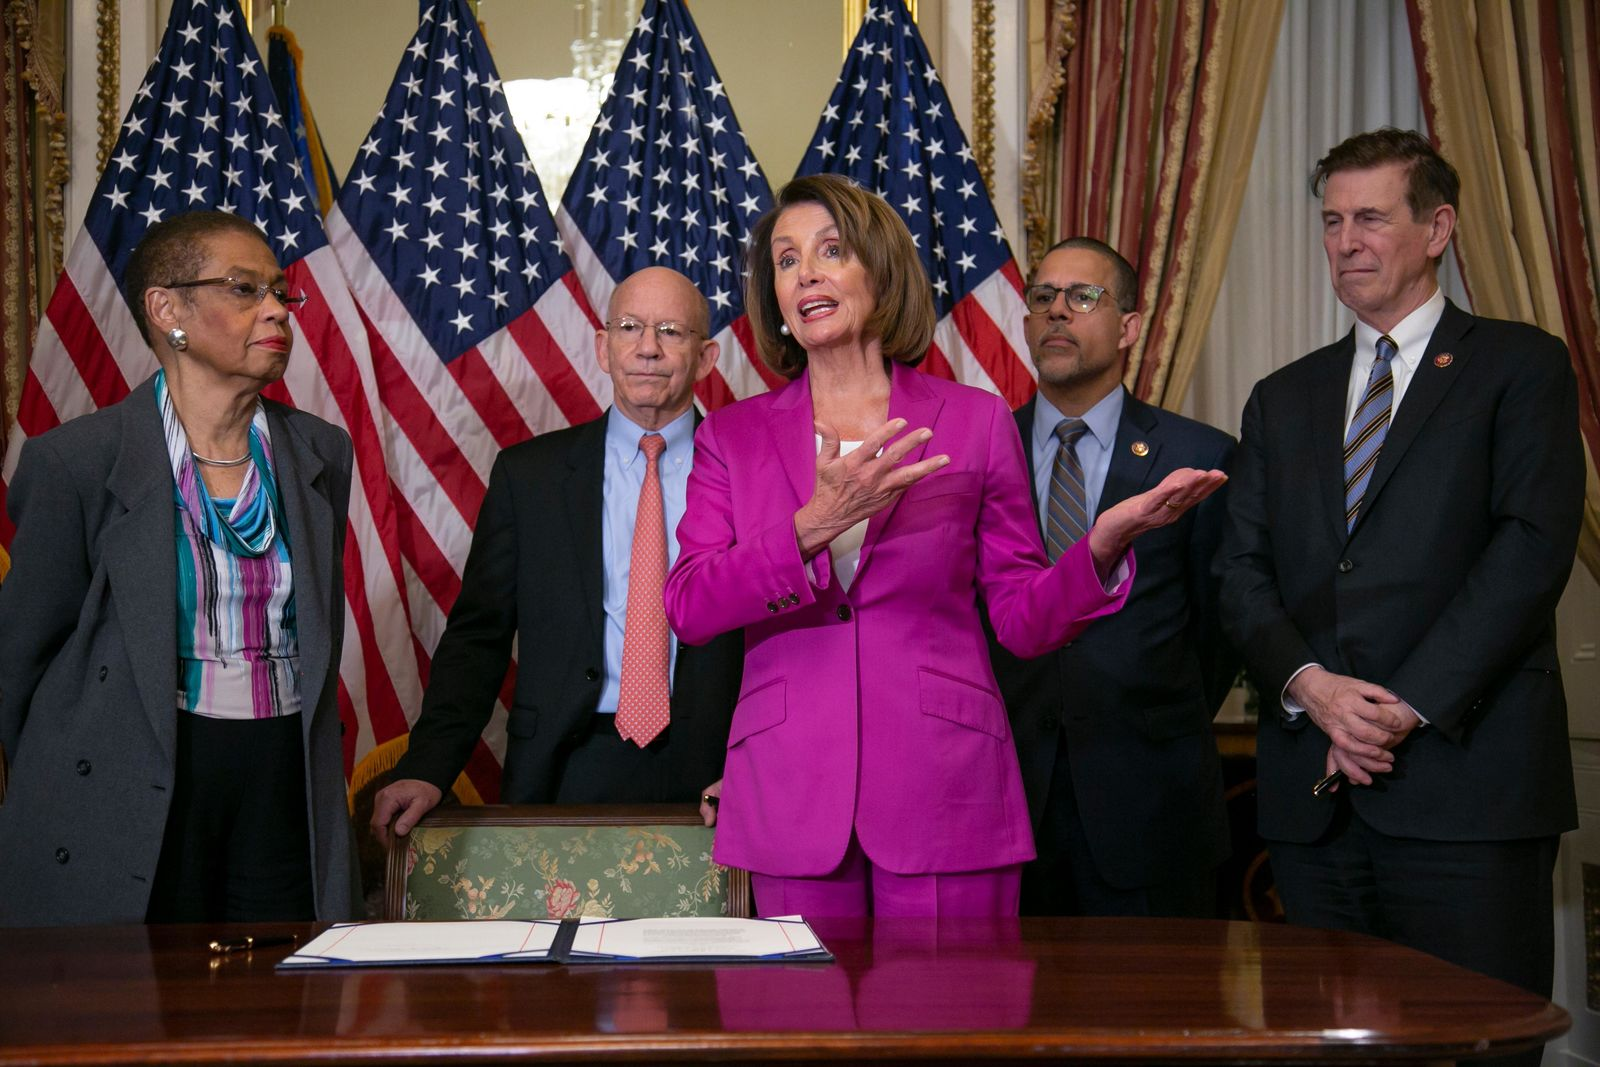 Speaker of the House Nancy Pelosi, D-Calif., talks to reporters after signing a House-passed a bill requiring that all government workers receive retroactive pay after the partial shutdown ends, at the Capitol in Washington, Friday, Jan. 11, 2019. (AP Photo/J. Scott Applewhite)